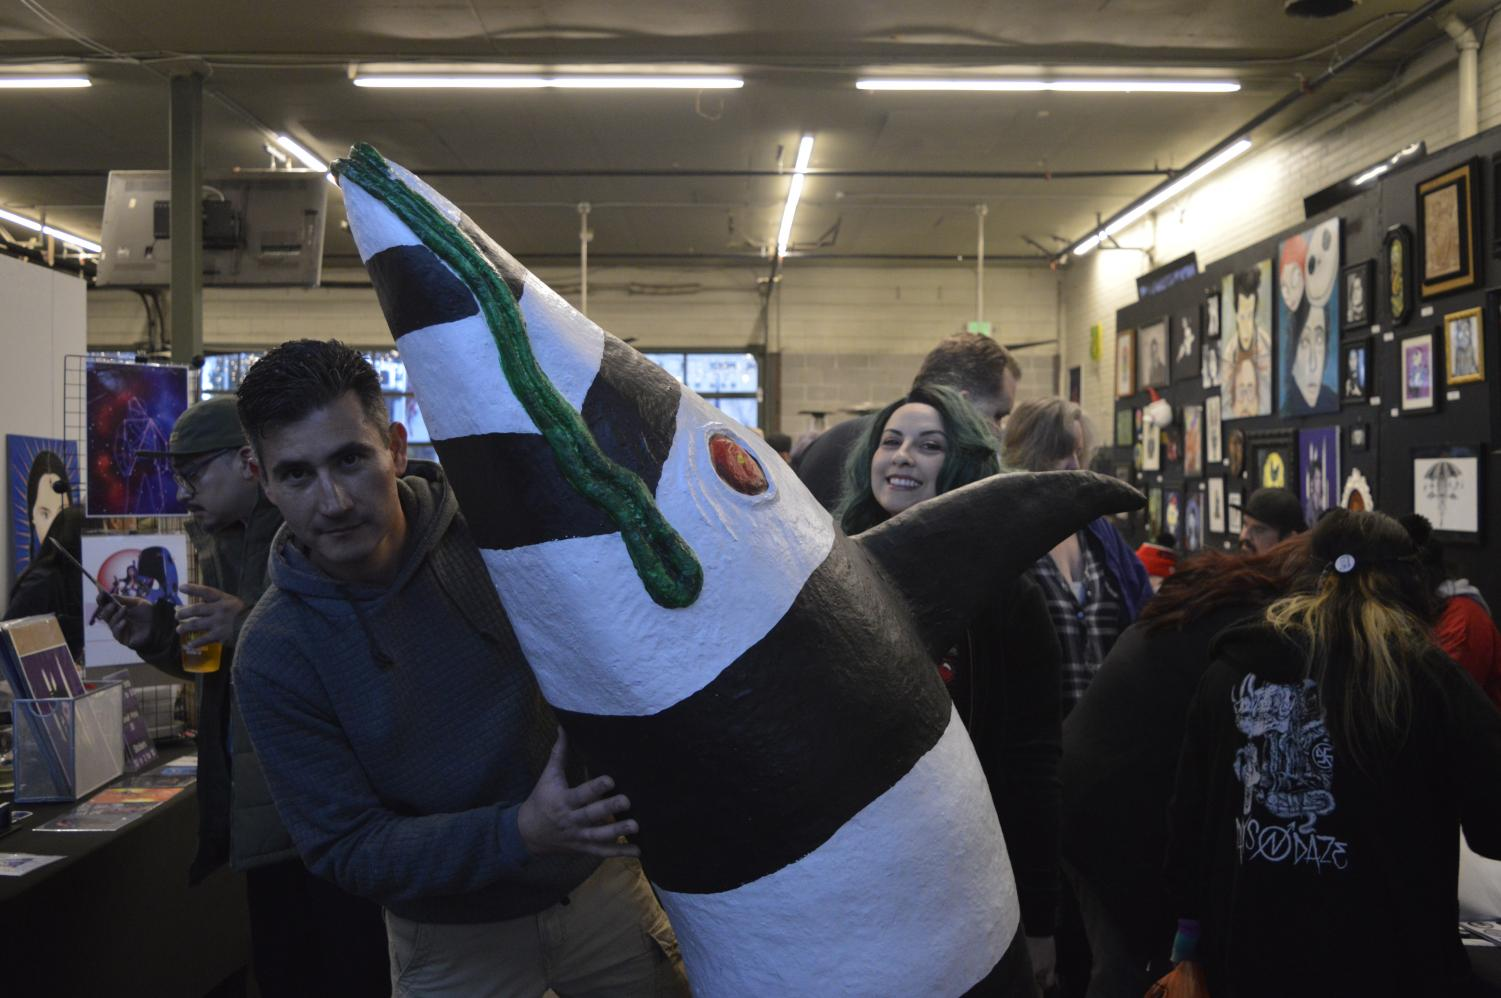 David and Caroline Vicchio prepare their 5' tall sandworm at Tioga Sequoia Brewing at a Tim Burton art Tribute on Saturday March 2.